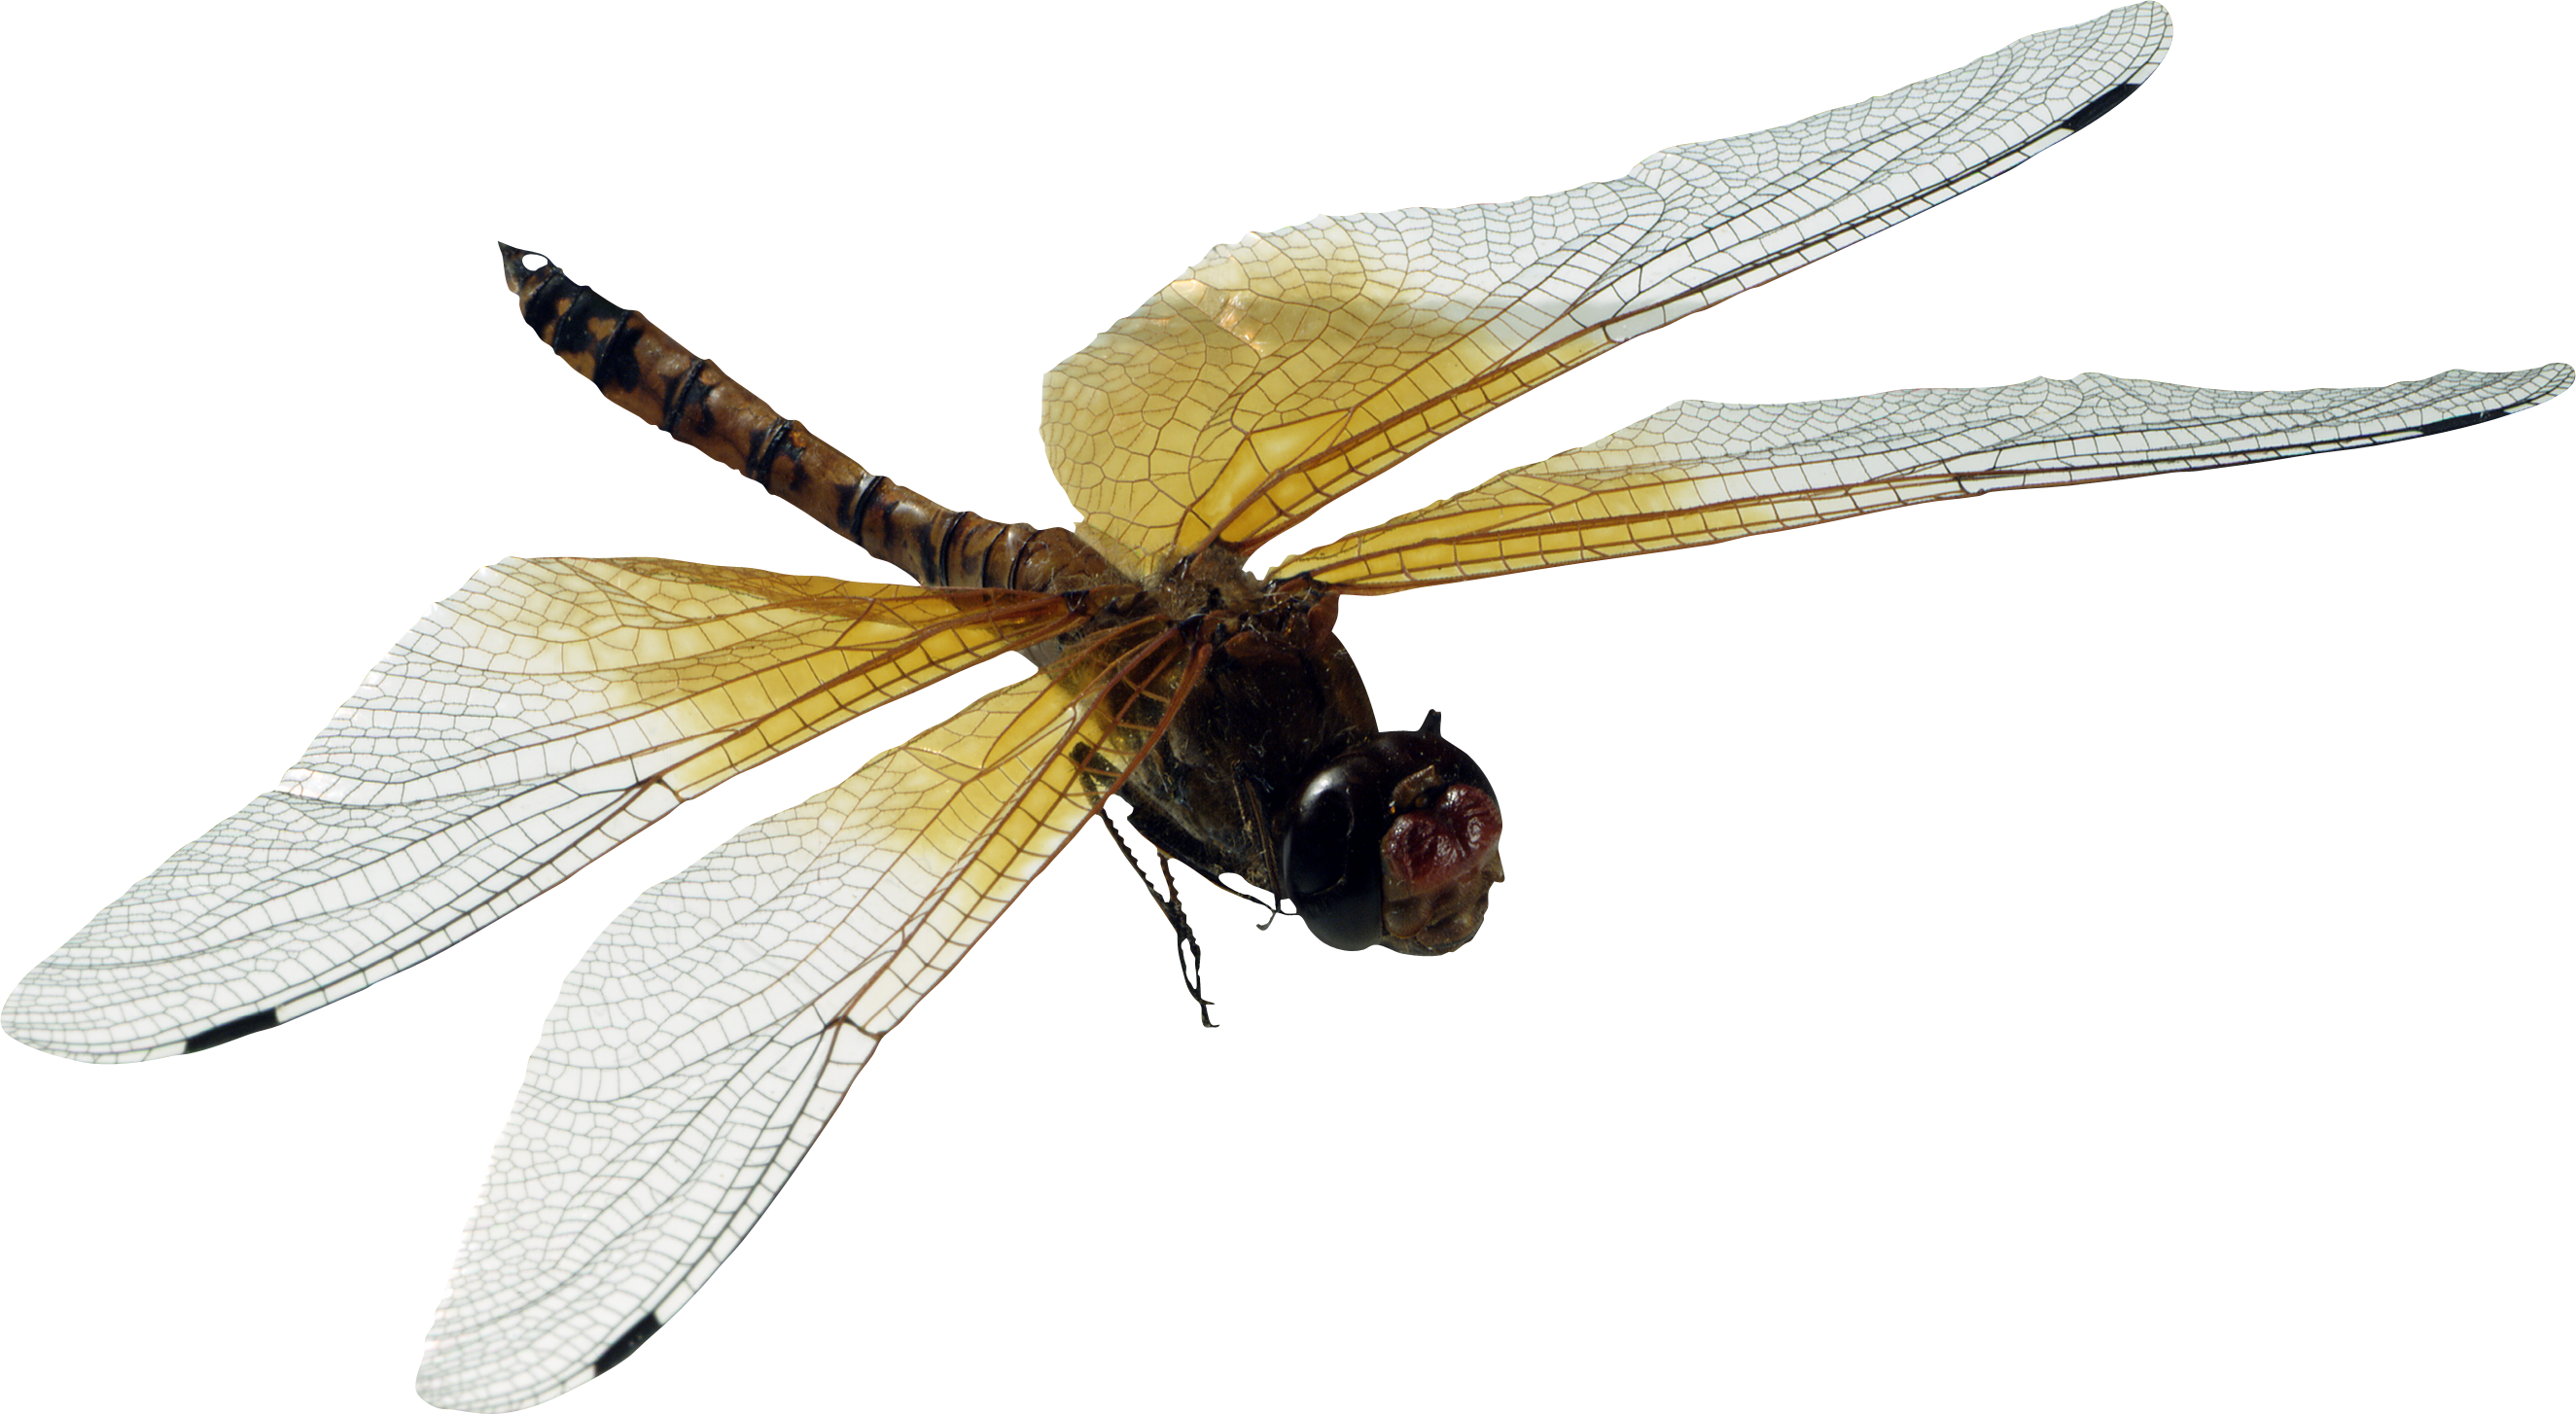 Dragonfly PNG - Dragonfly PNG